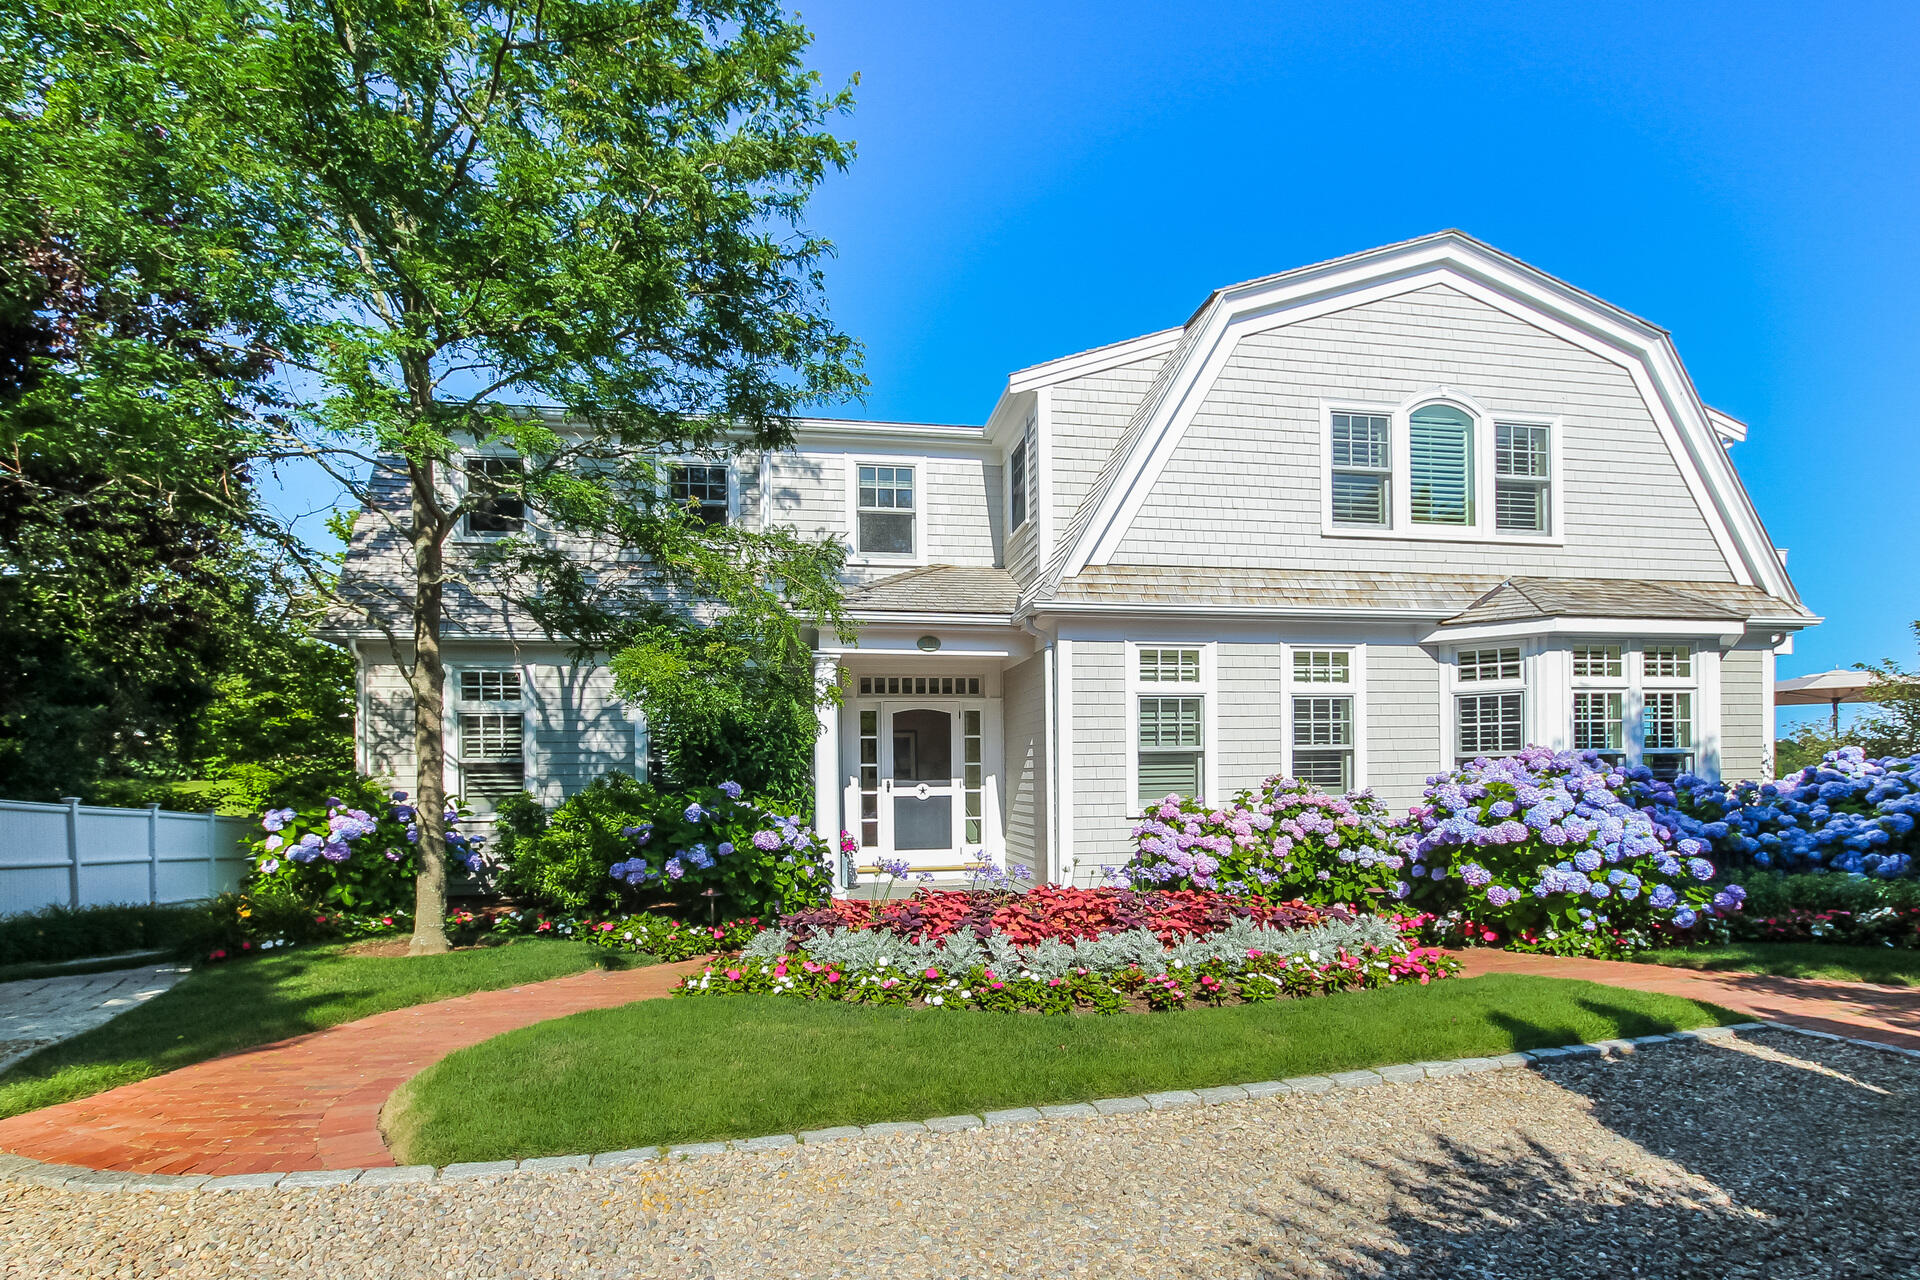 39 Seaview Terrace, Chatham, MA details